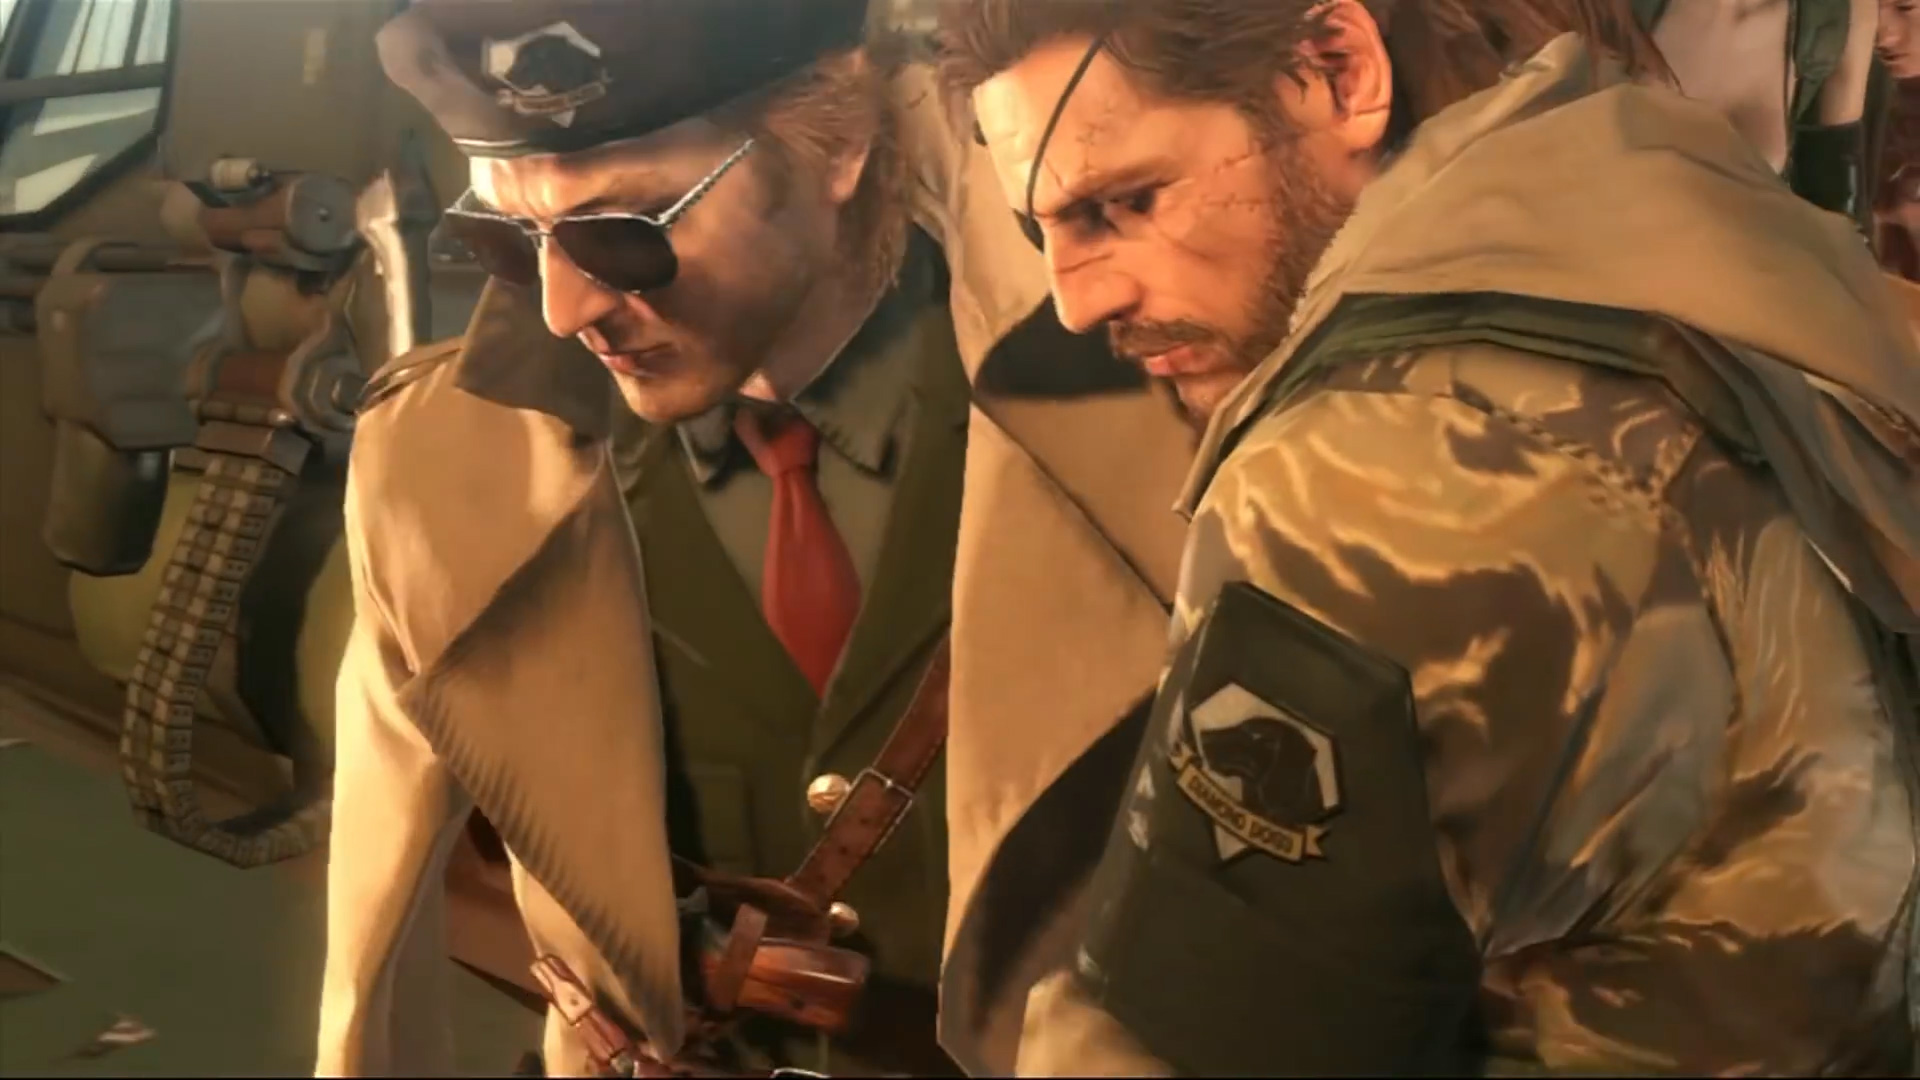 Metal-Gear-Solid-V-The-Phantom-Pain-Kaz-Chapter-1-Ending